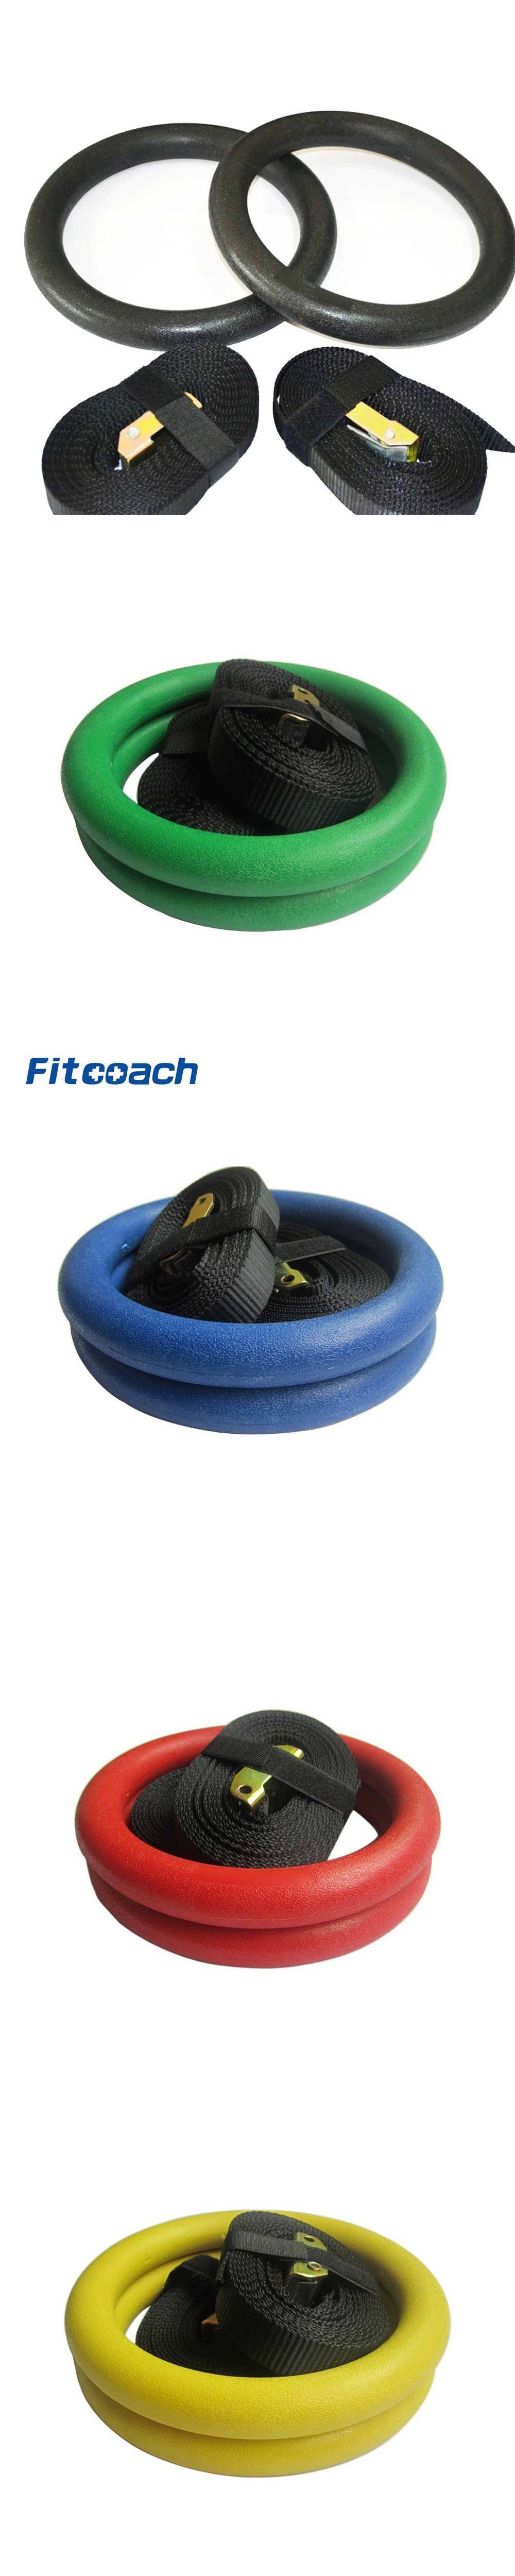 trainer gym rings bodyweight kettlebells usa shipping free wooden olympic gymnastics training kettlebellsusa exercise suspension crossfit fitness set